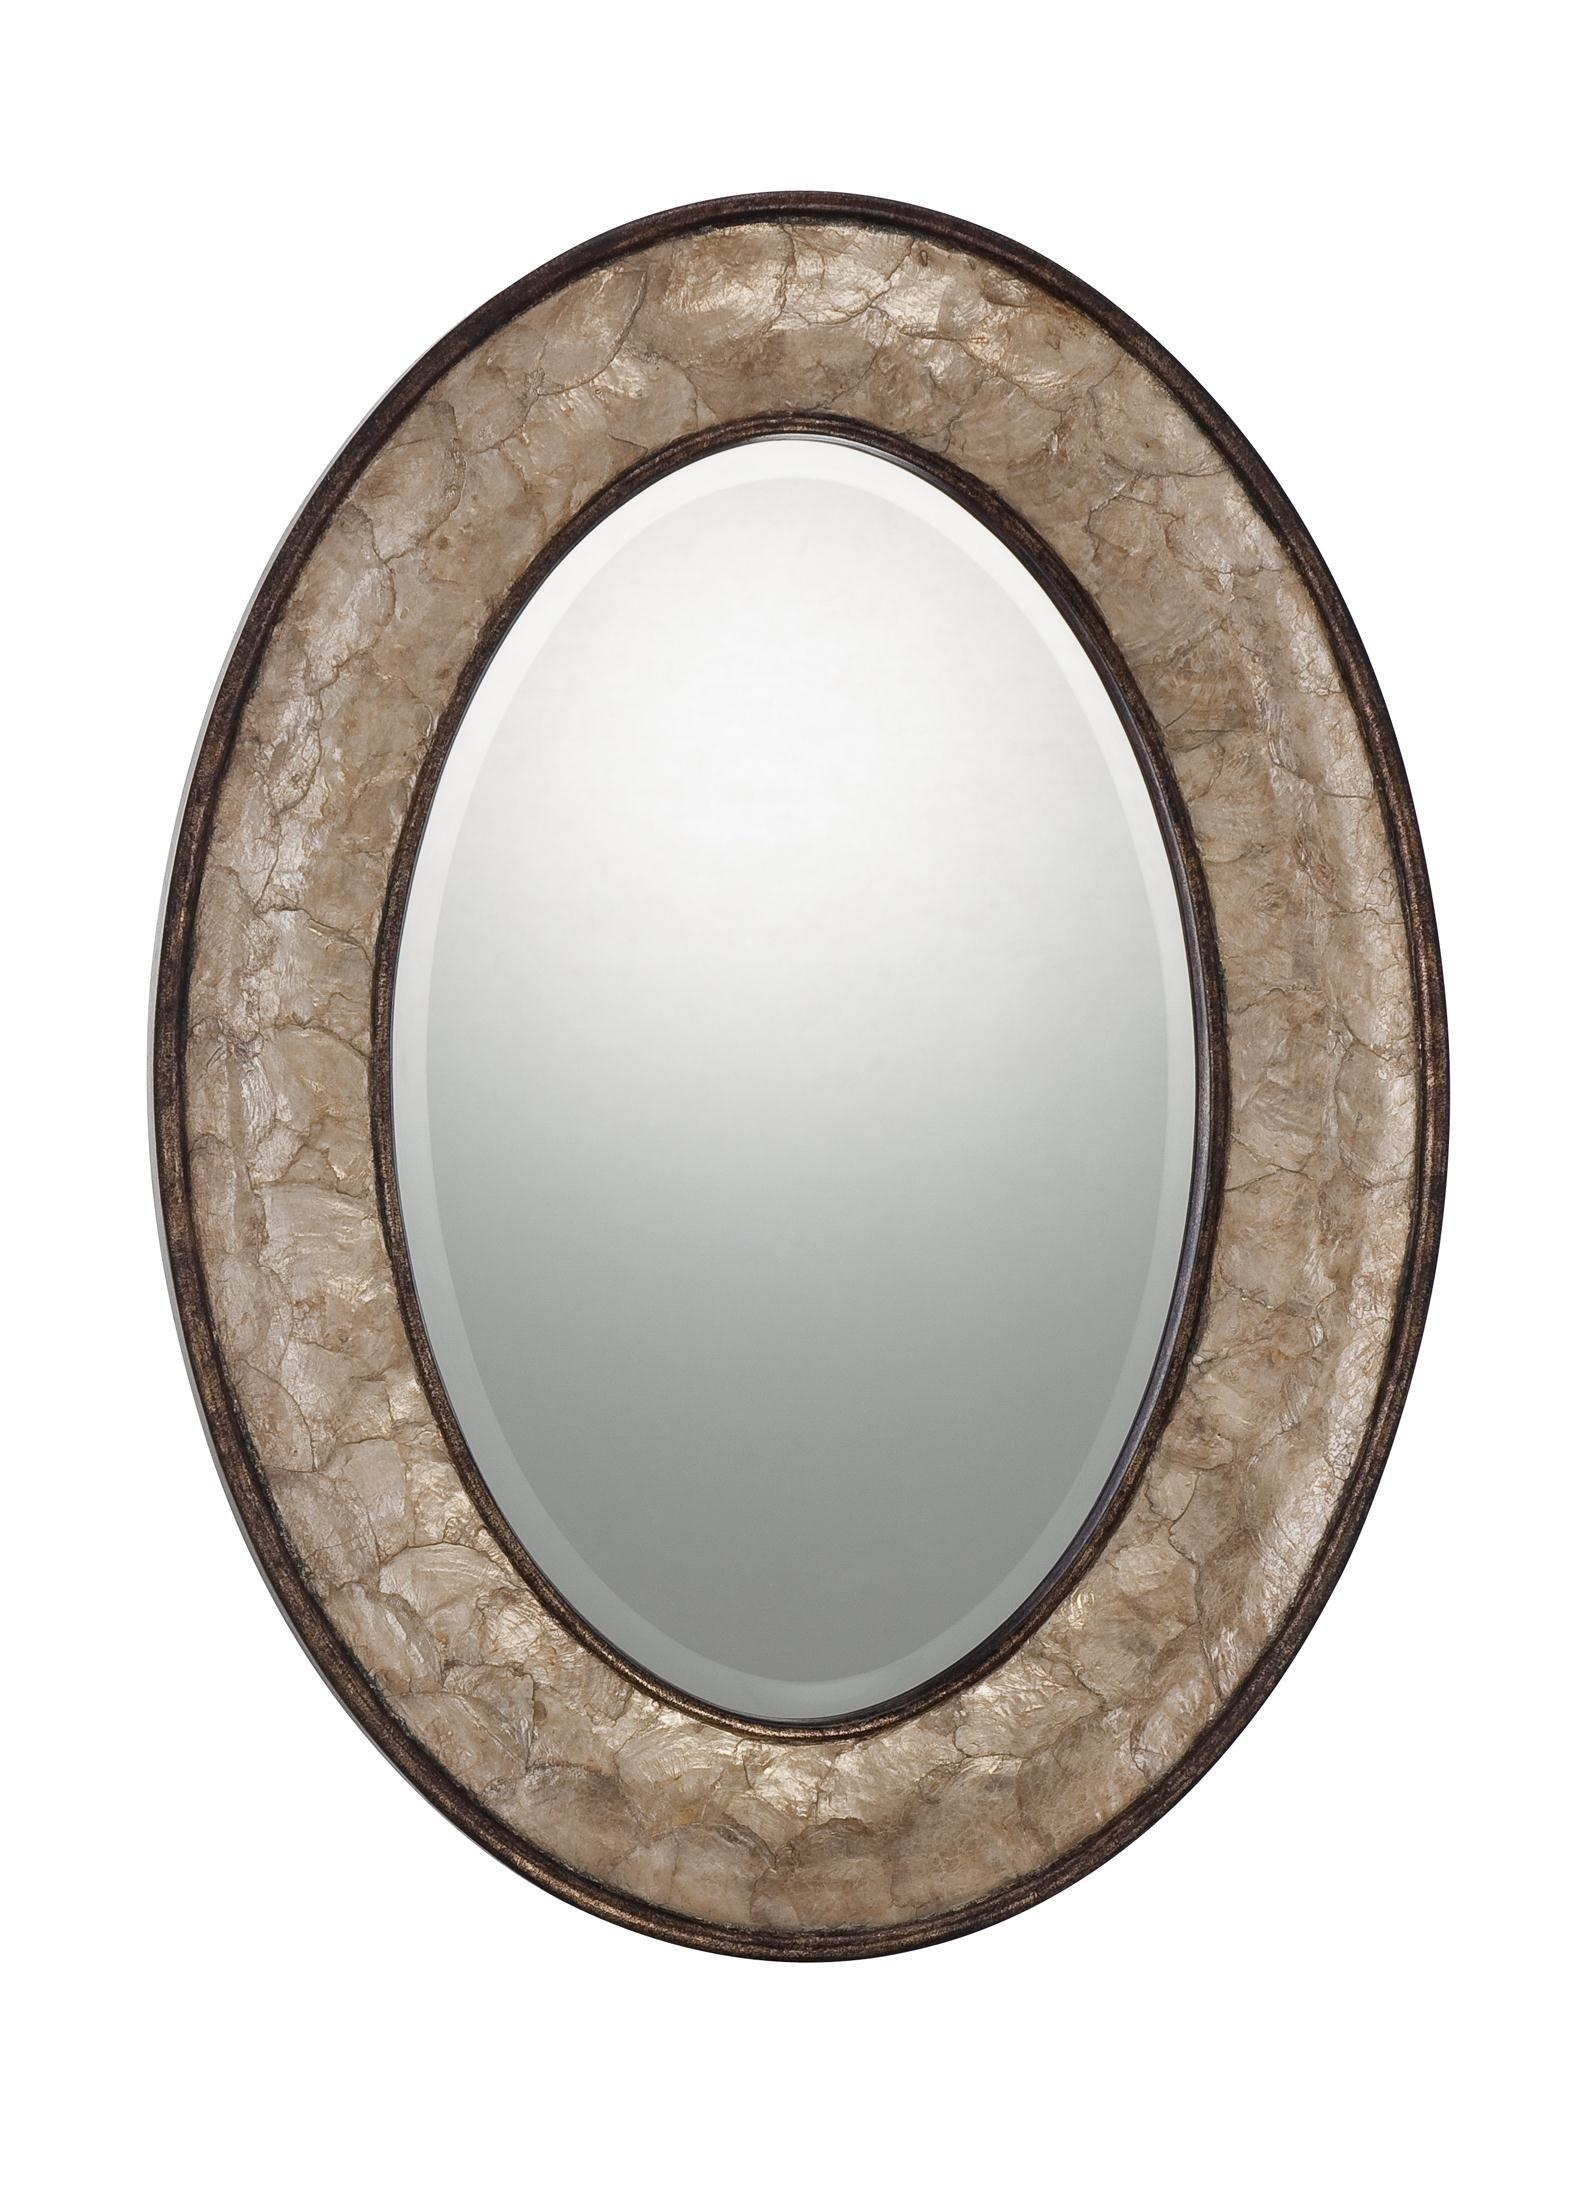 Cheap Oval Bathroom Mirrors : Oval Bathroom Mirrors Beautiful With Oval Bath Mirrors (View 14 of 20)